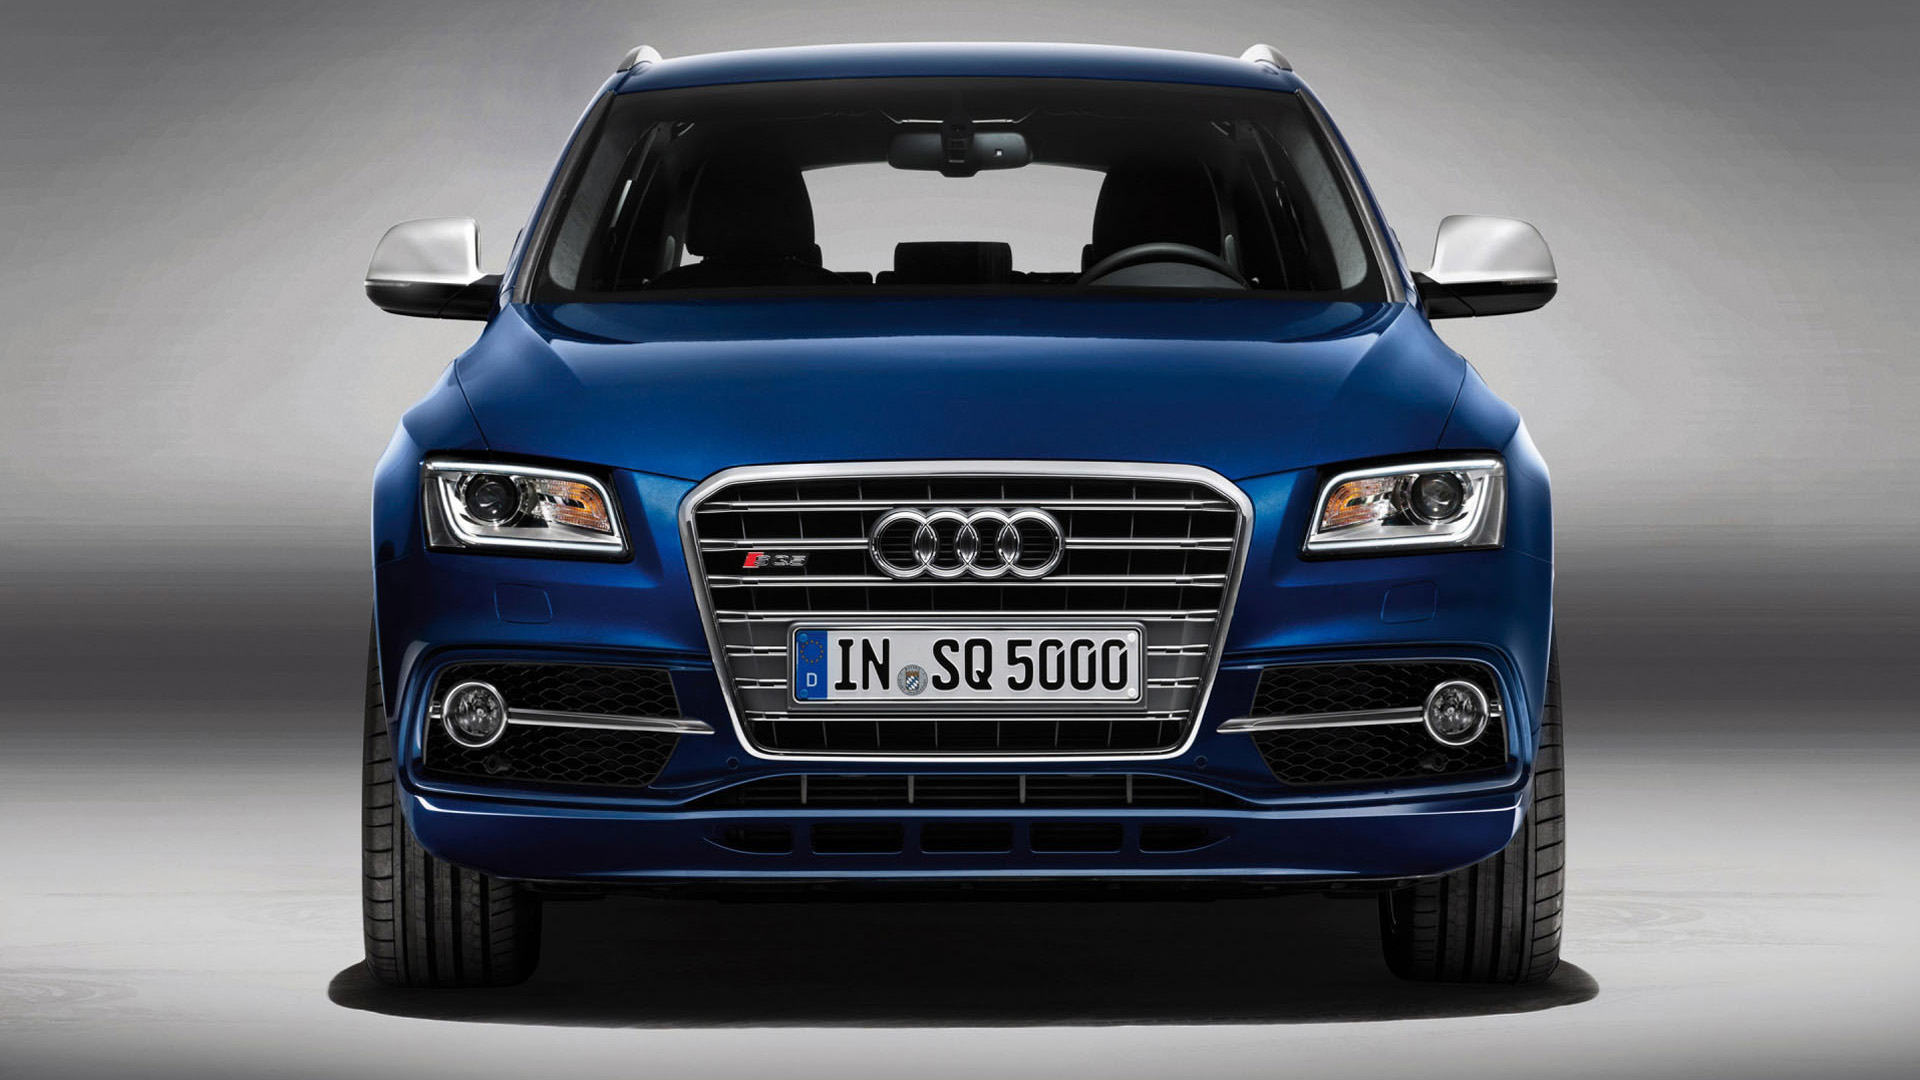 2013 Audi SQ5 TFSI Perfect Front View